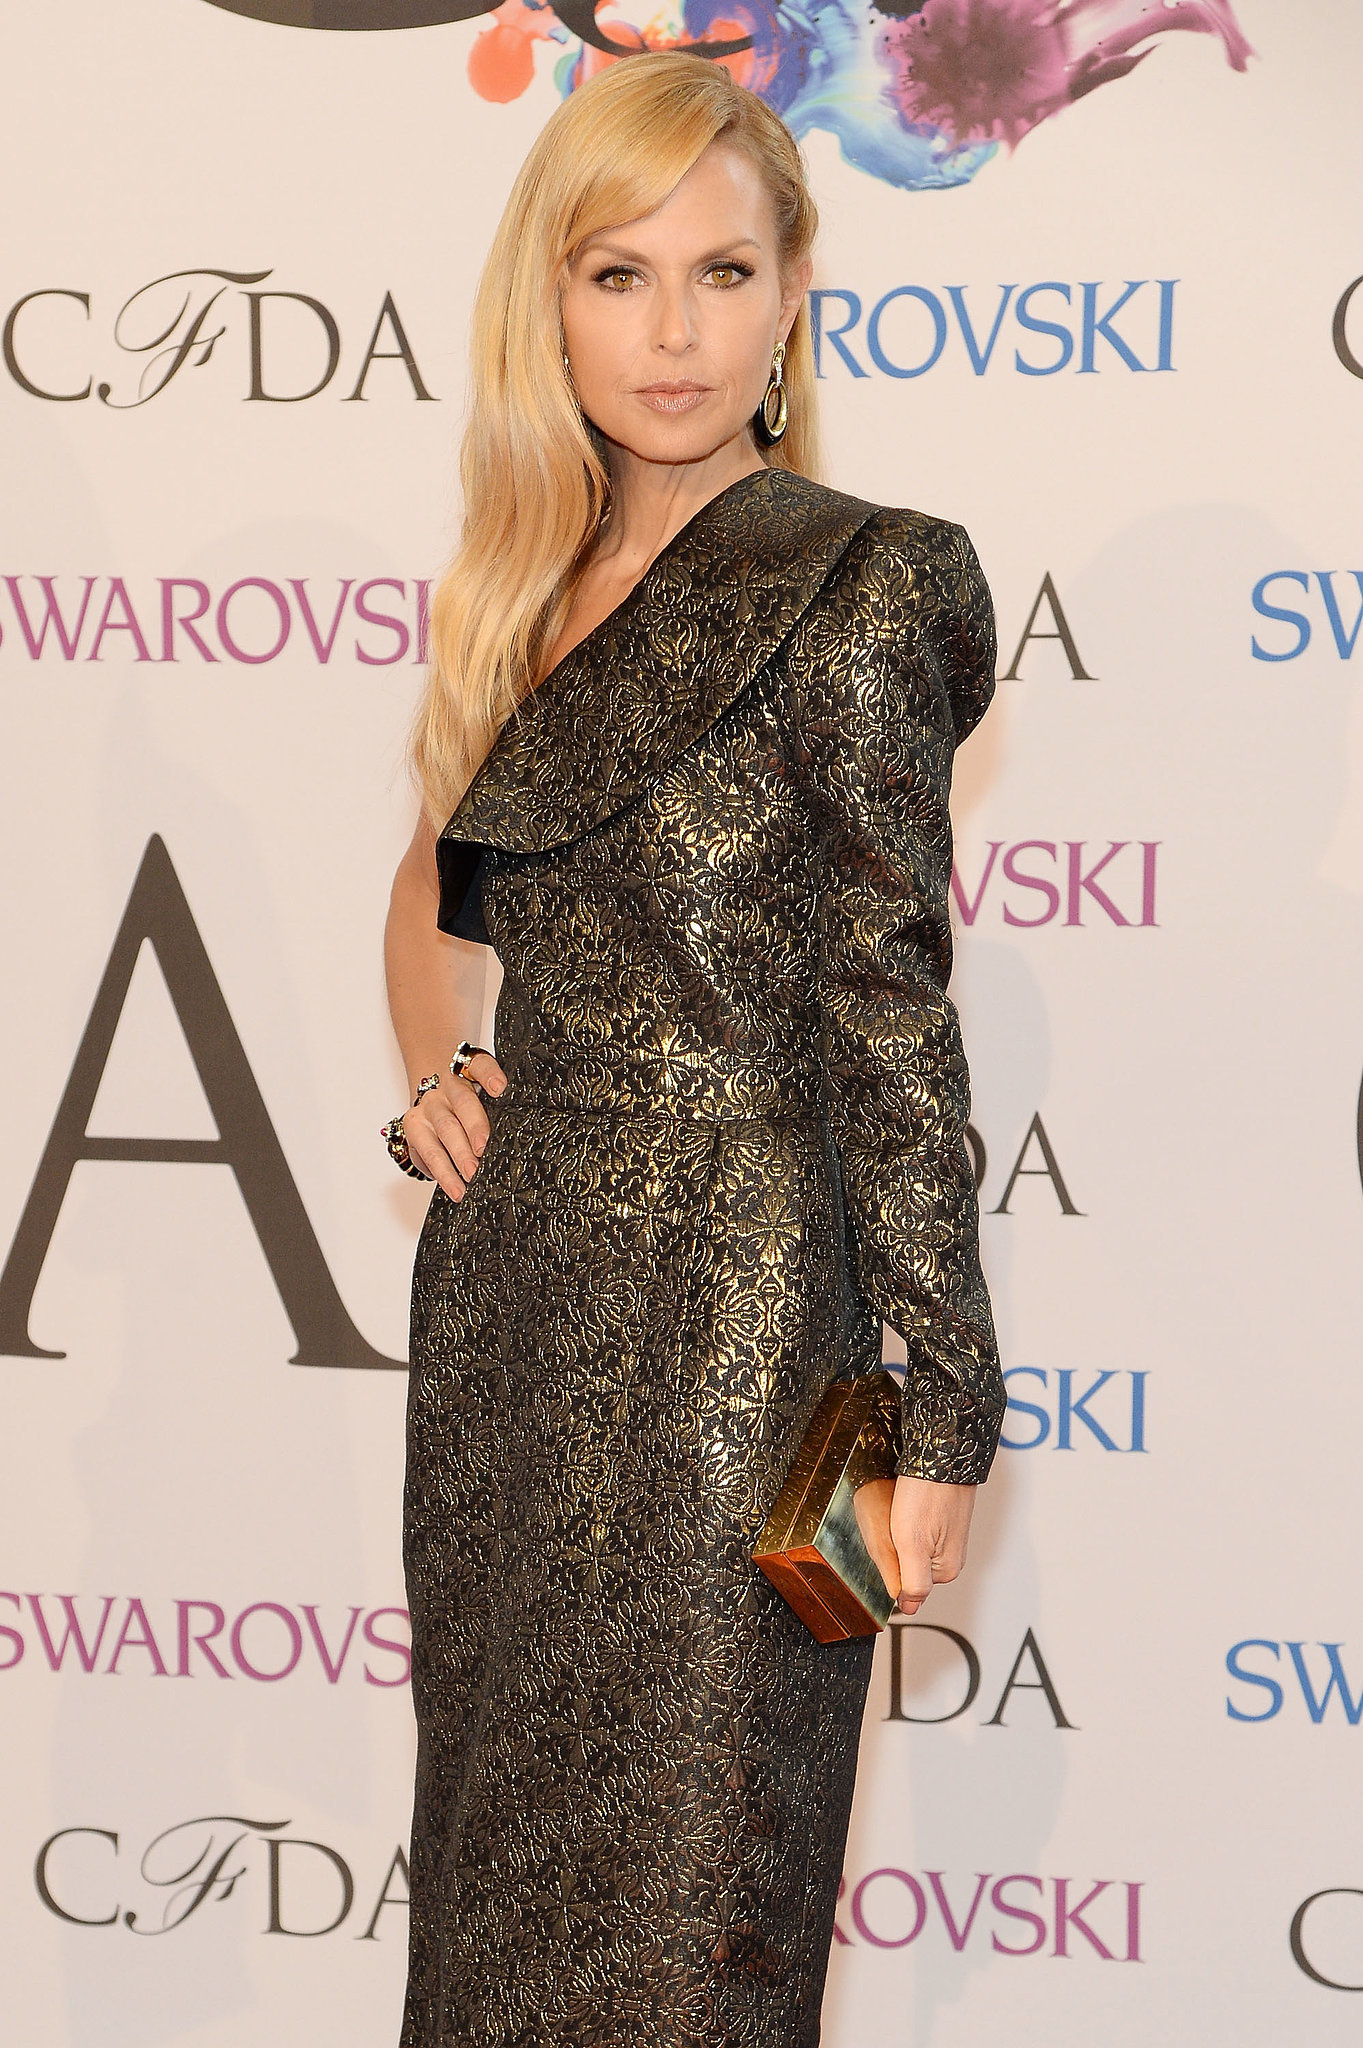 Rachel Zoe stepped out in NYC for the event.